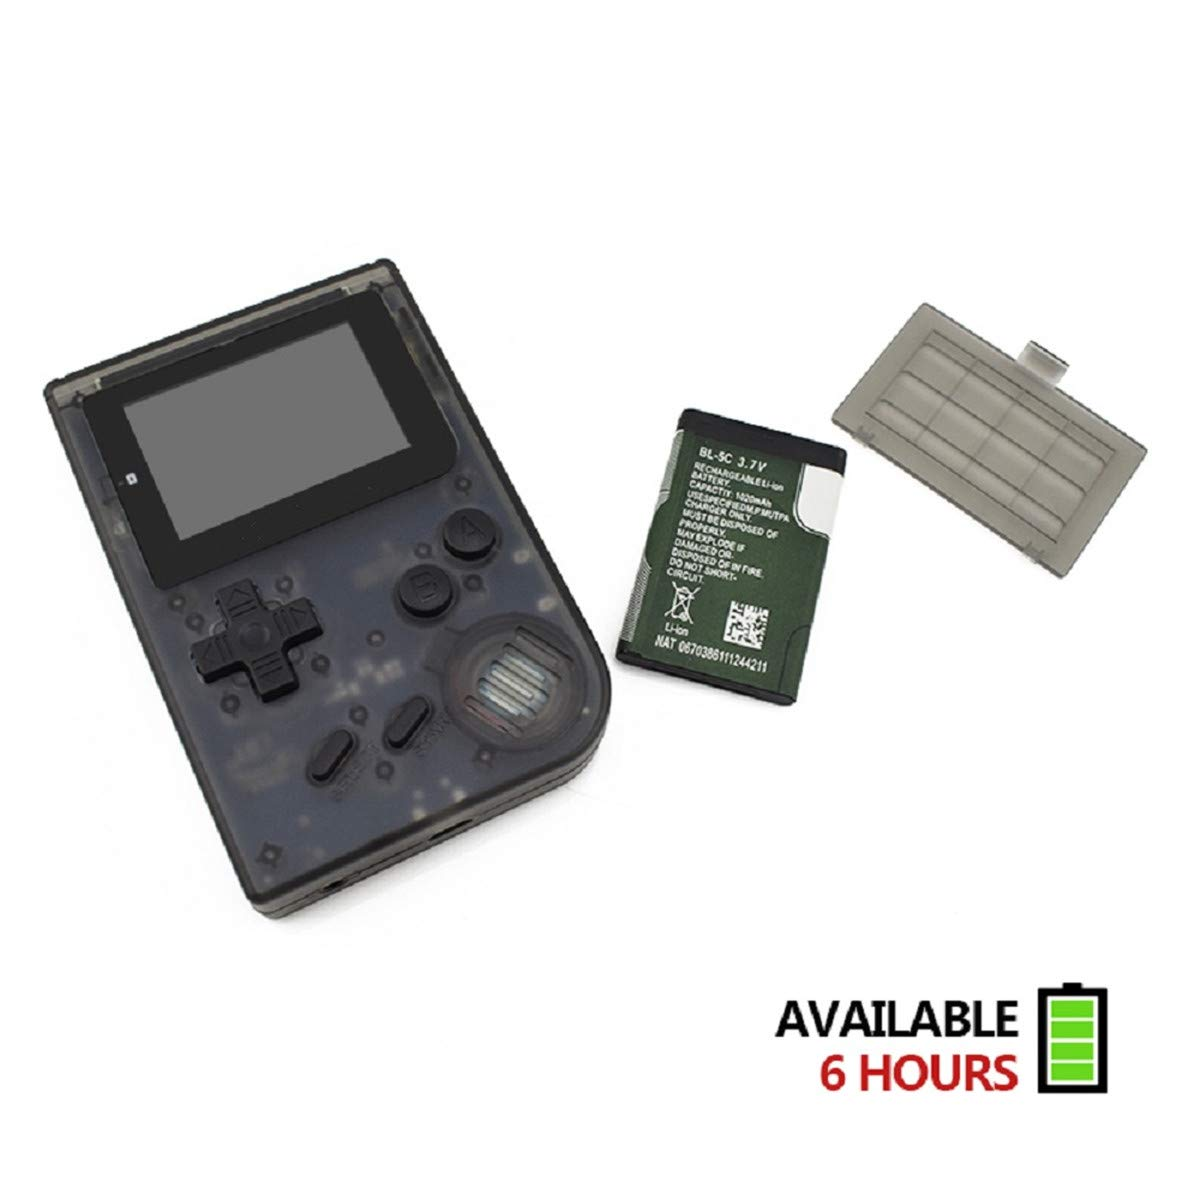 BAORUITENG Handheld Games Consoles , Retro TV Game Console Video Game Console Player 2.0 Inch Game Console with 1169 GBA System Classic Games for Kids Gift (Black) by BAORUITENG (Image #3)